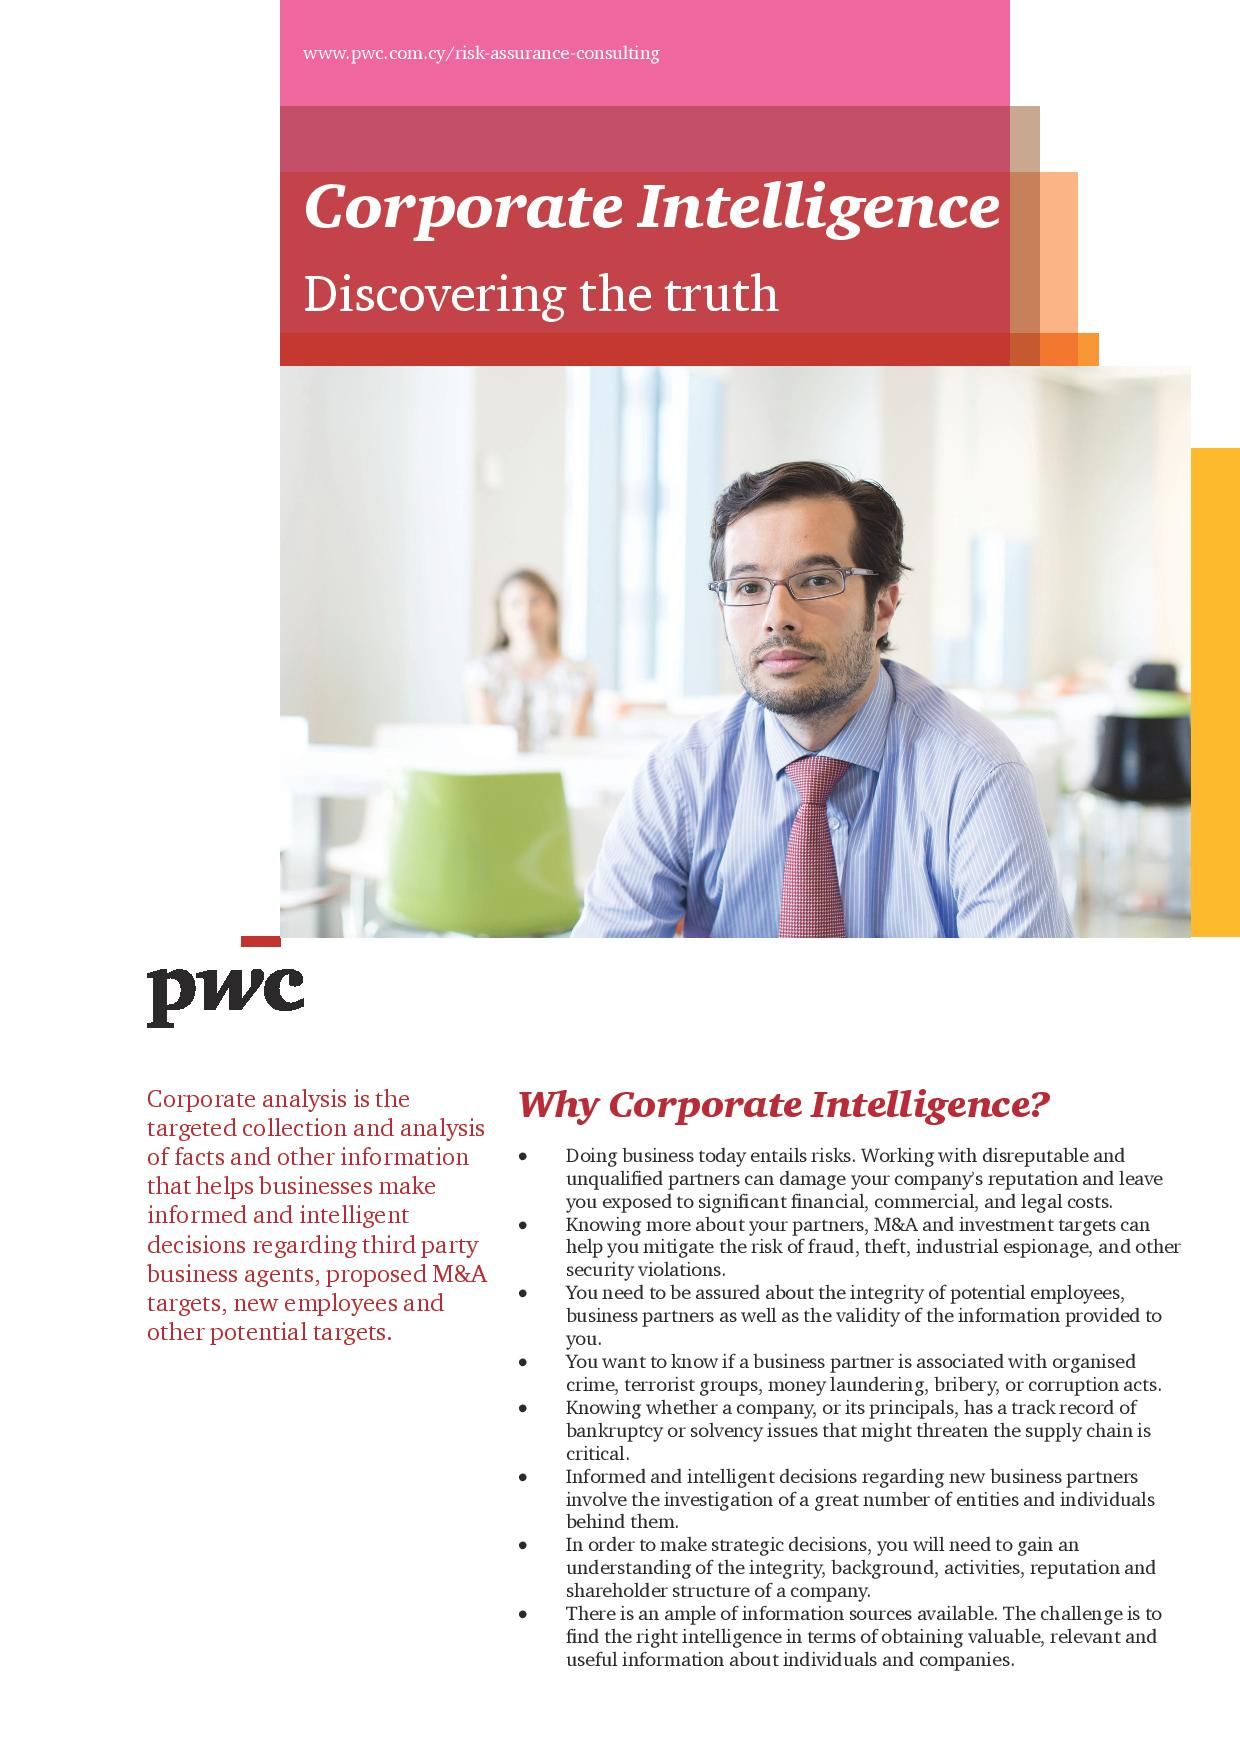 Corporate Intelligence - Discovering the Truth